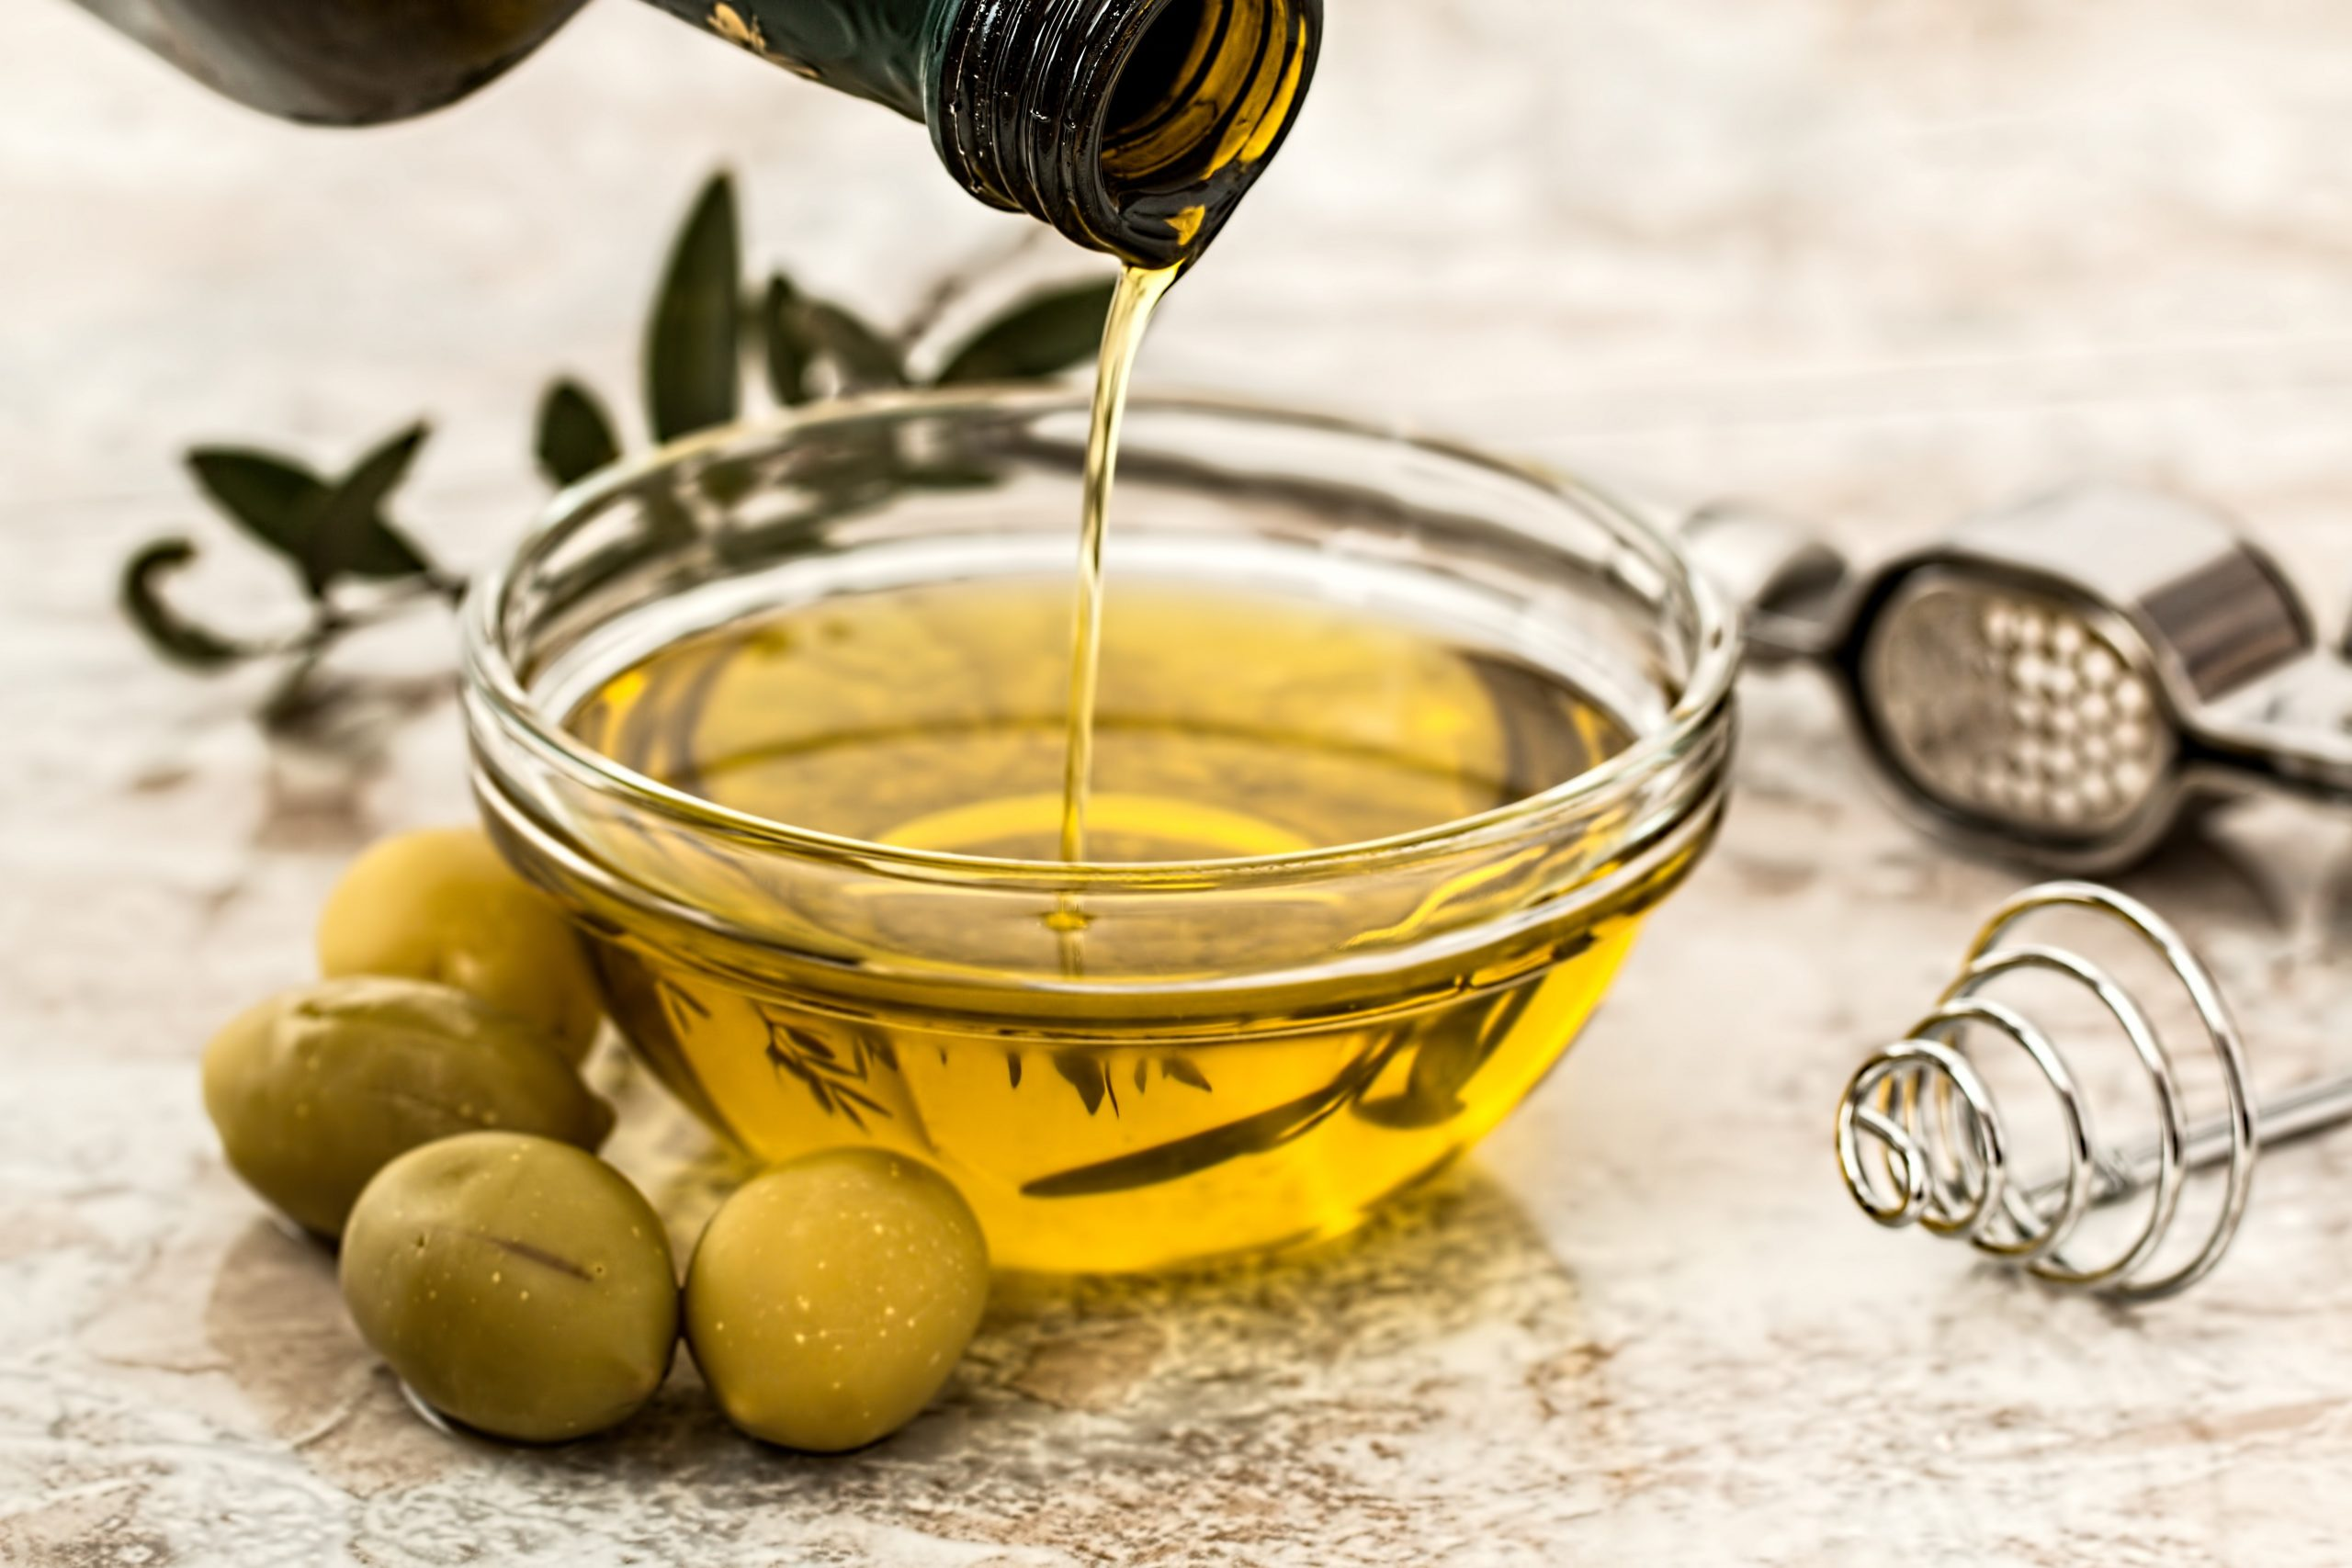 olive oil poured into bowl